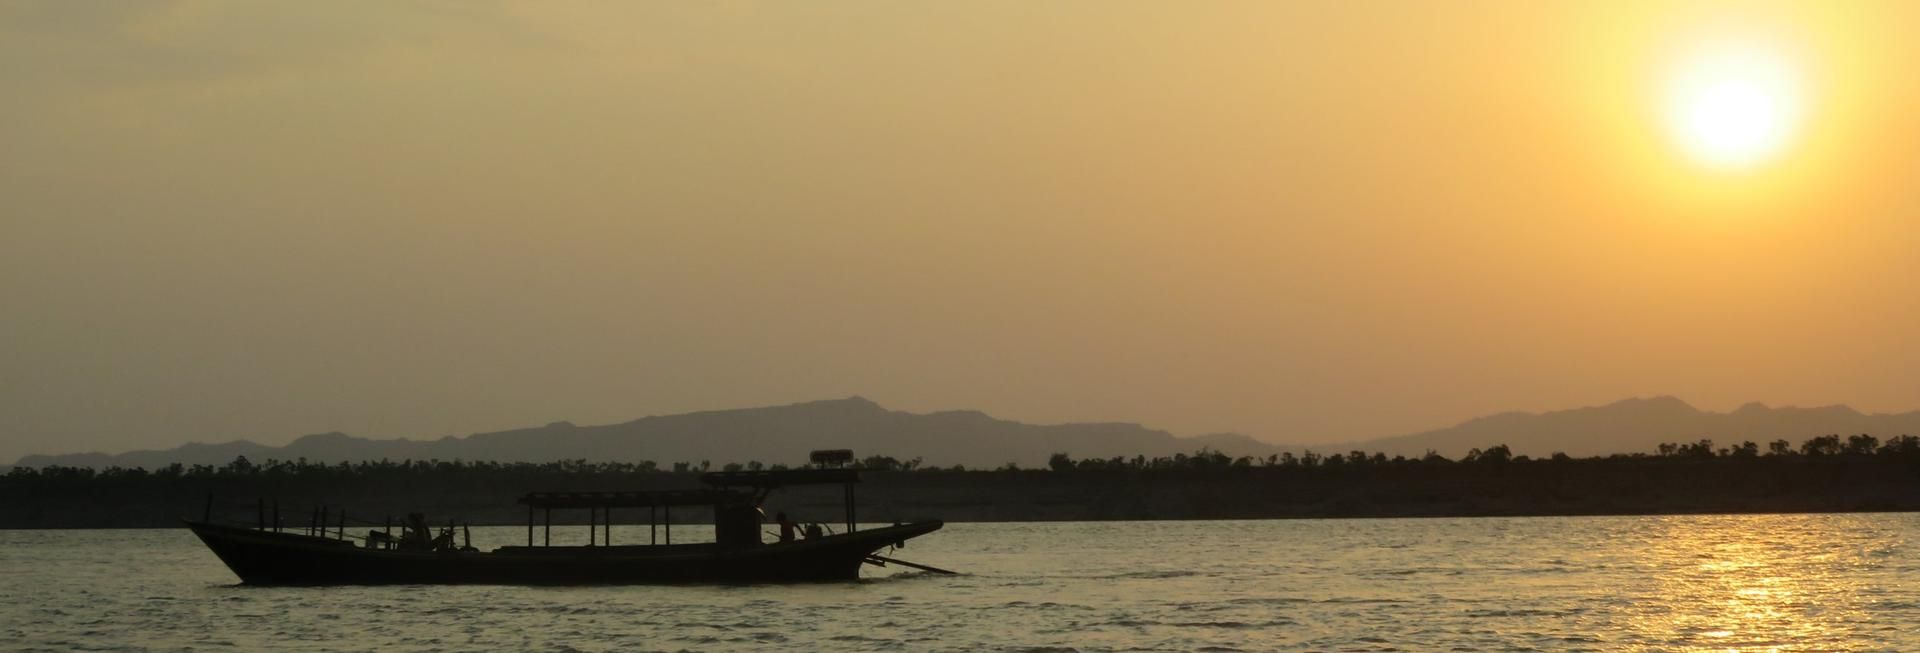 Sunset cruise, Irrawaddy River